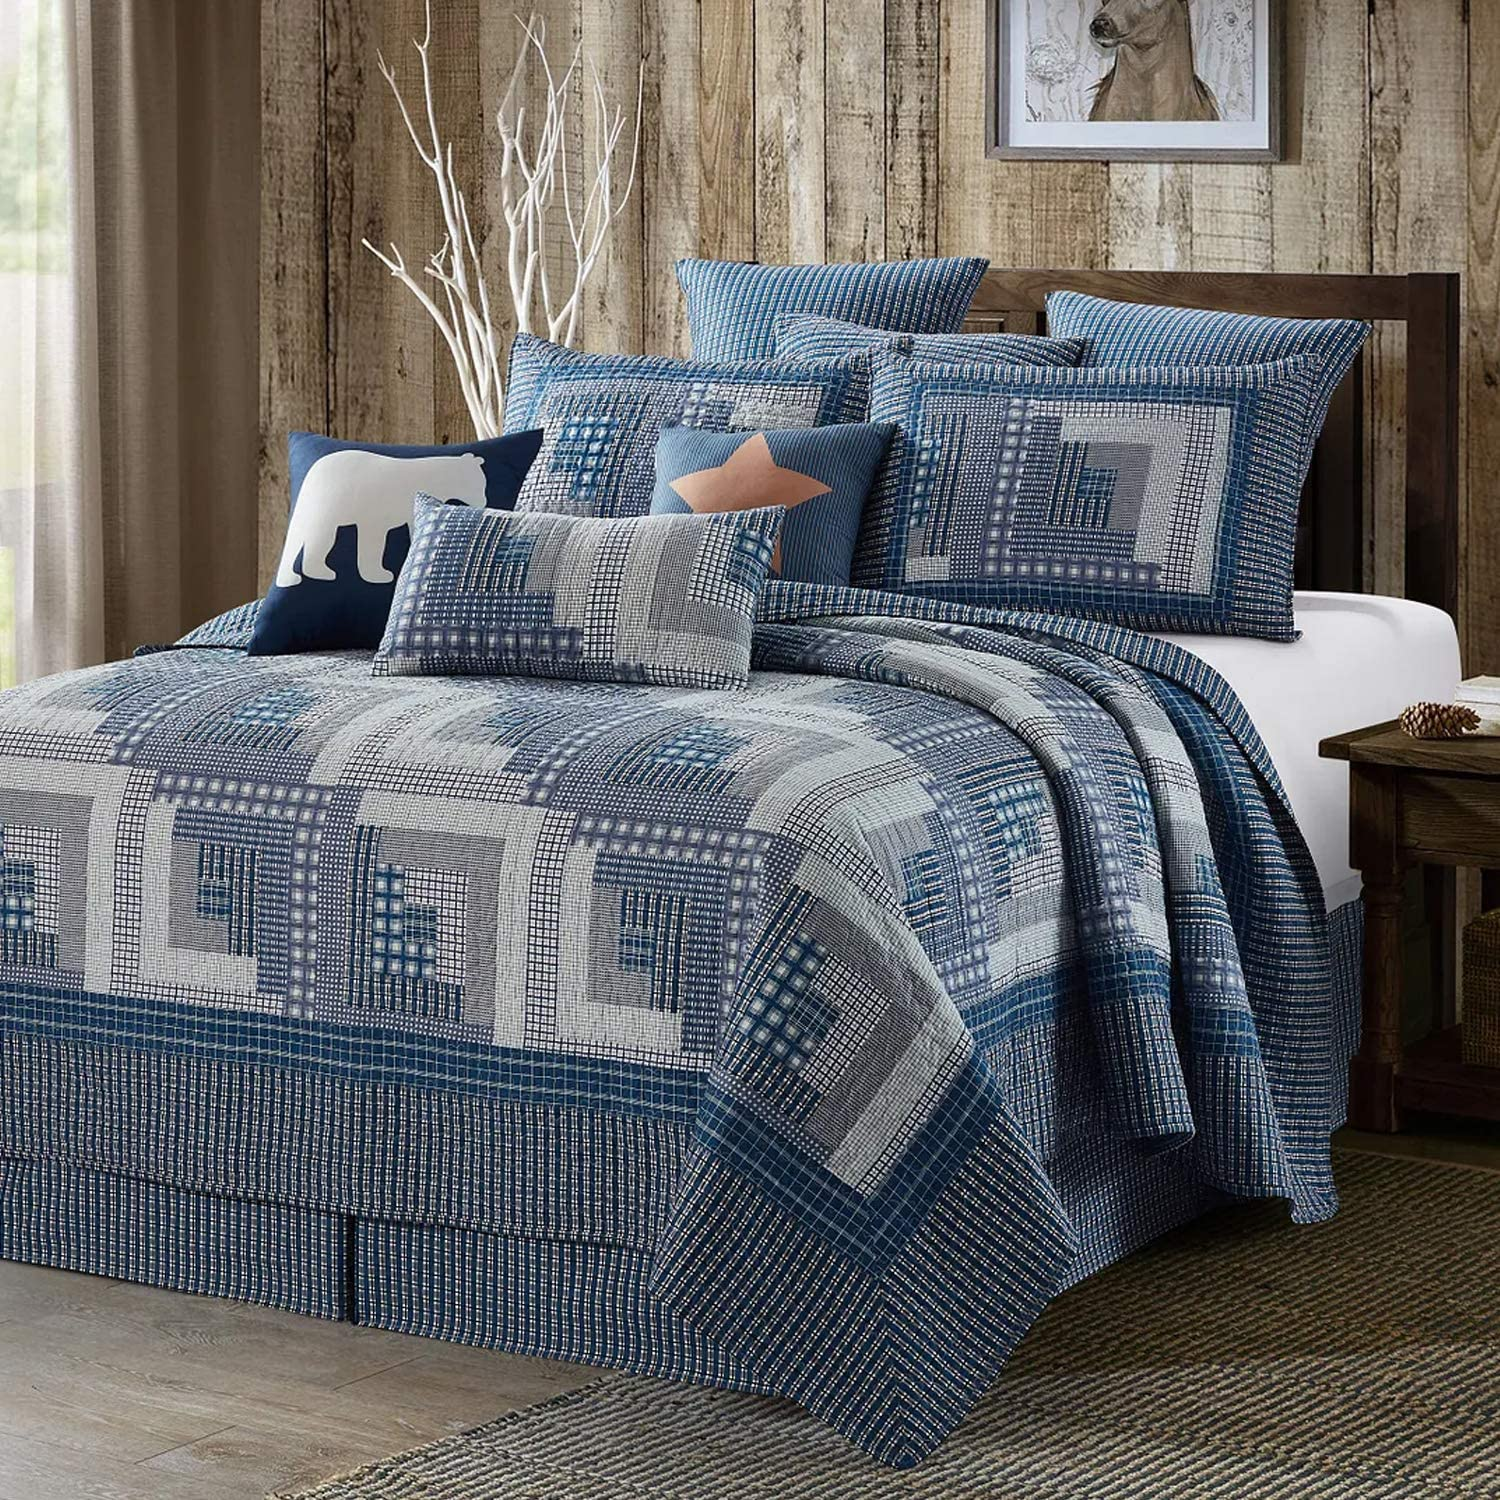 Quilt Bedding Set in King by Virah Bella - Montana Cabin: Blue/Gray Printed Lightweight Reversible Quilt with 2 Matching Pillow Shams - Cozy & Beautiful Lodge-Themed Bedding